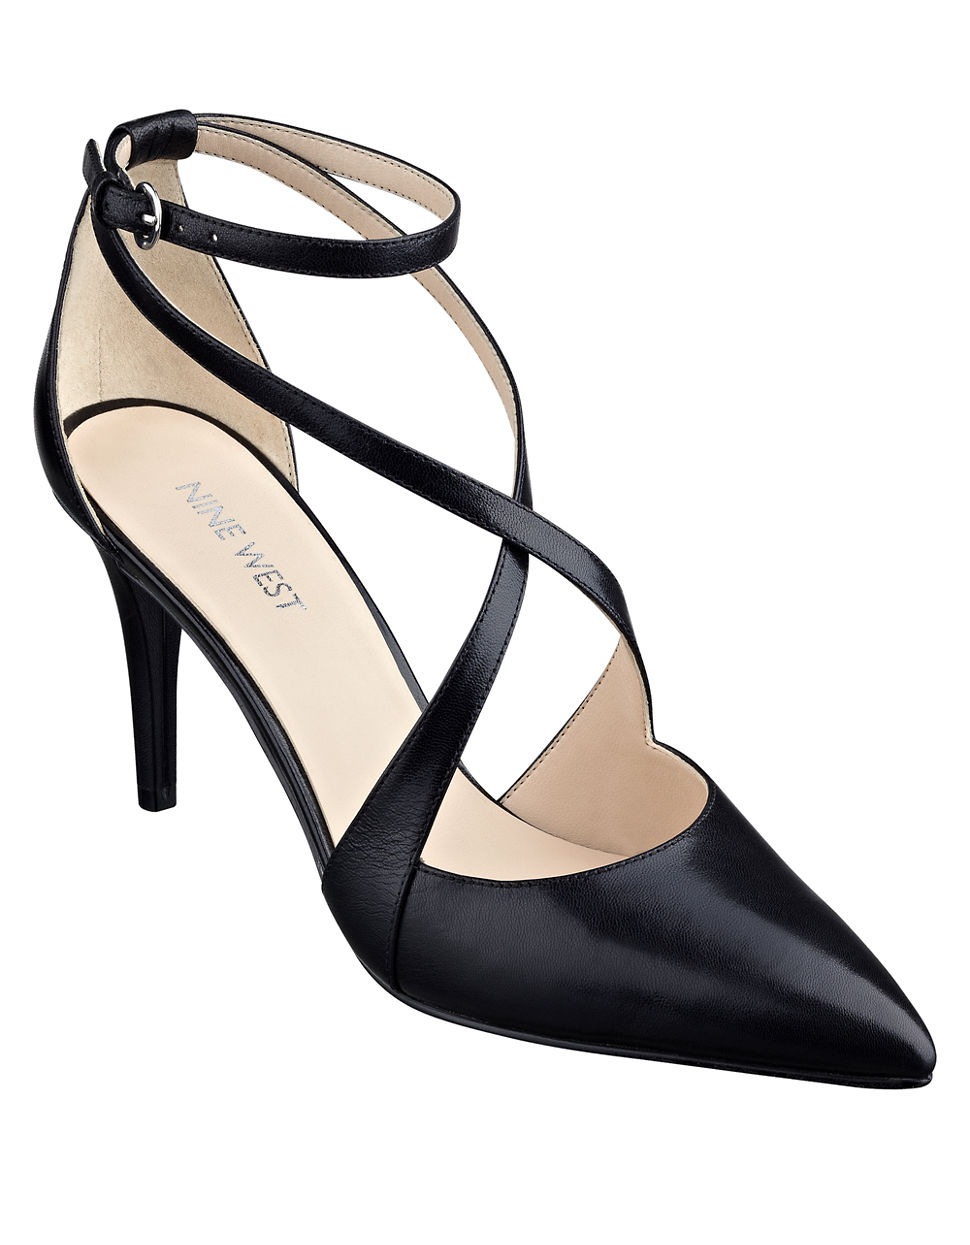 Lyst - Nine West Peacesign Leather Pointed-Toe Pumps in Black bb7f9fe85